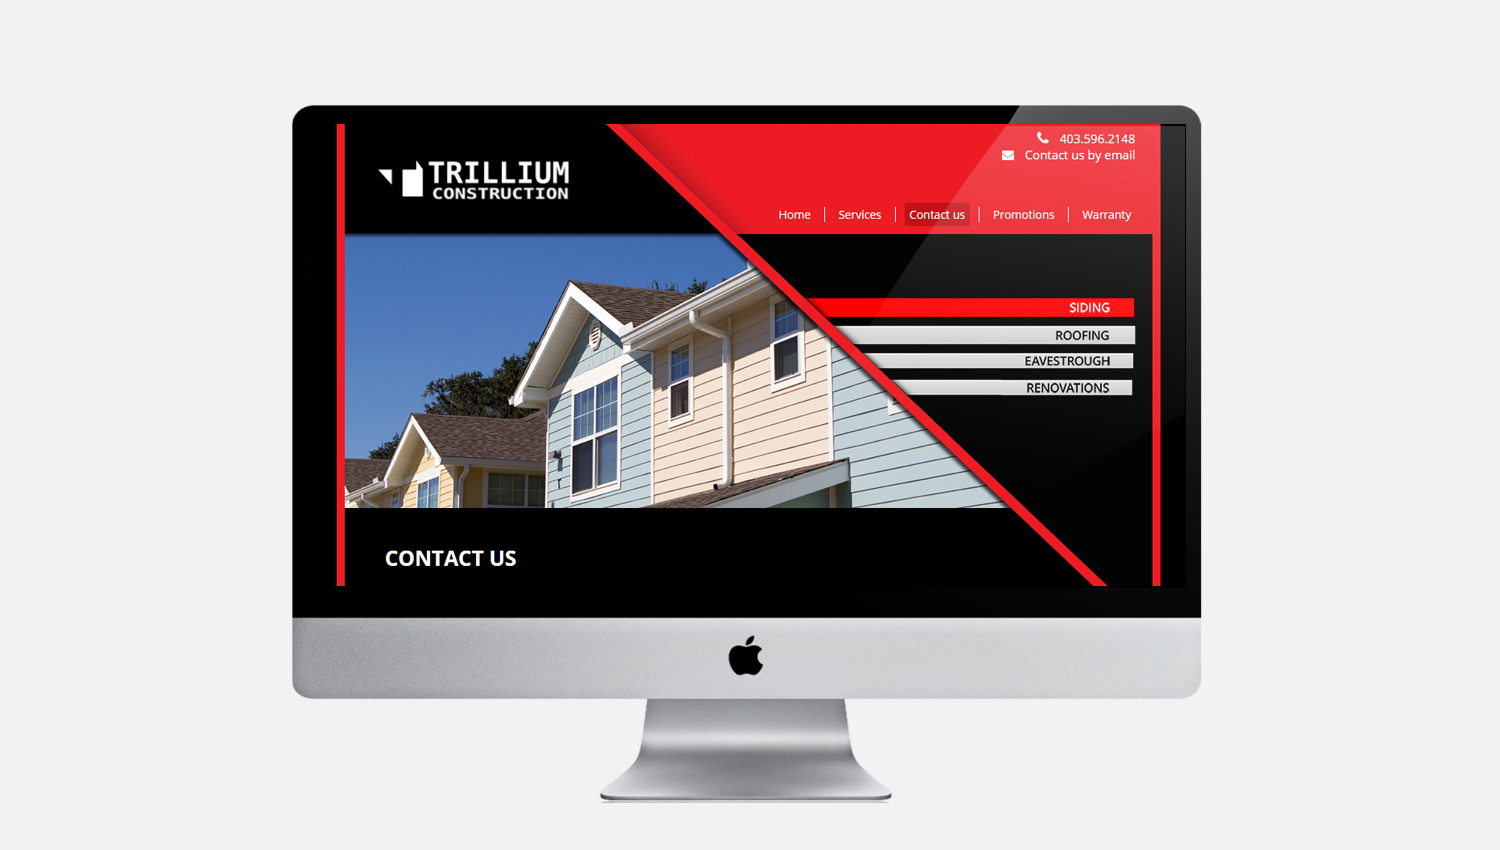 Trillium Construction is an Exterior Restoration and Repair company ready to take on any project